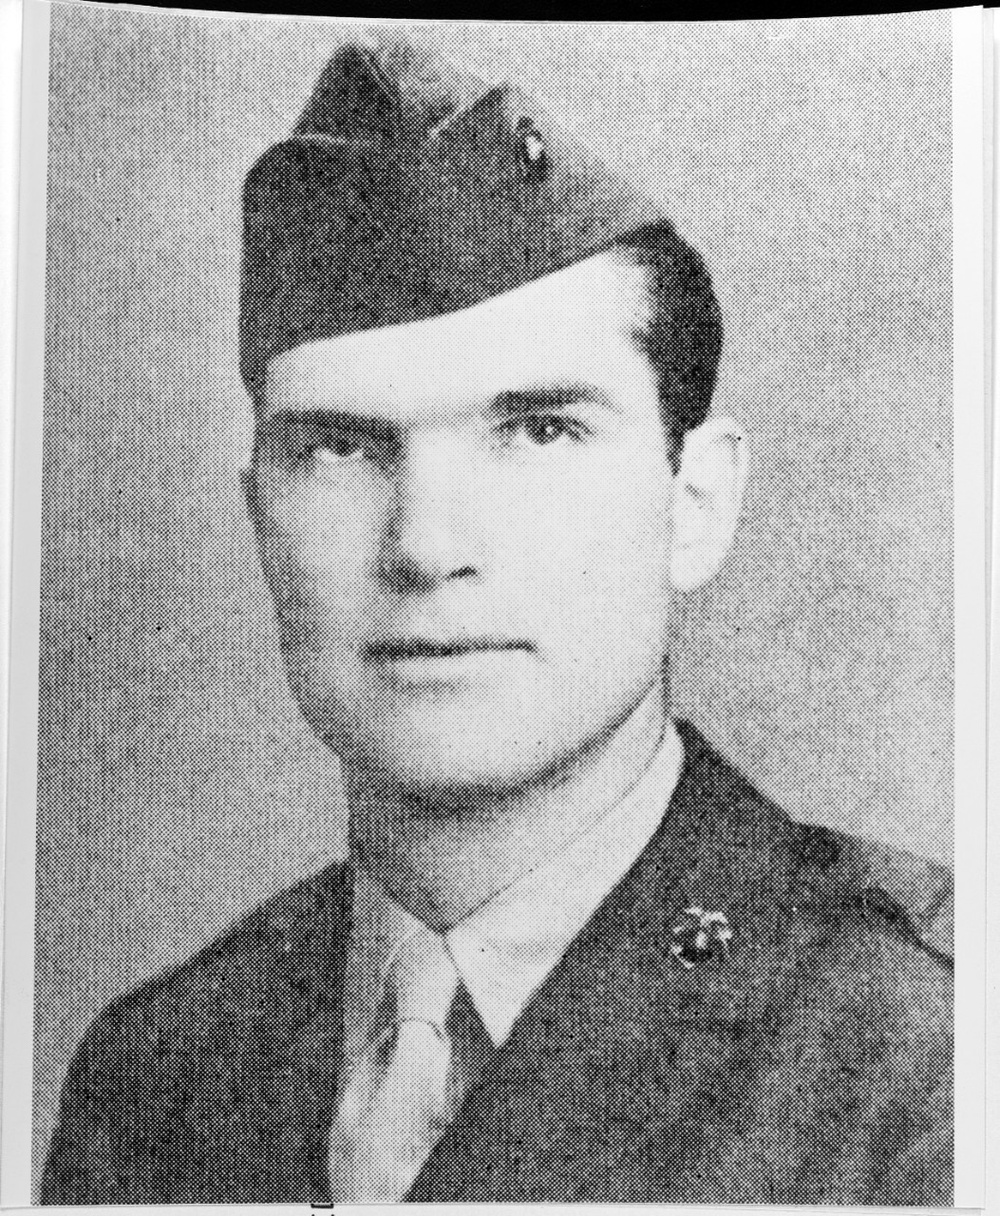 Halyburton Medical Health Clinic Honors Namesake 76 Years after Medal of Honor Actions